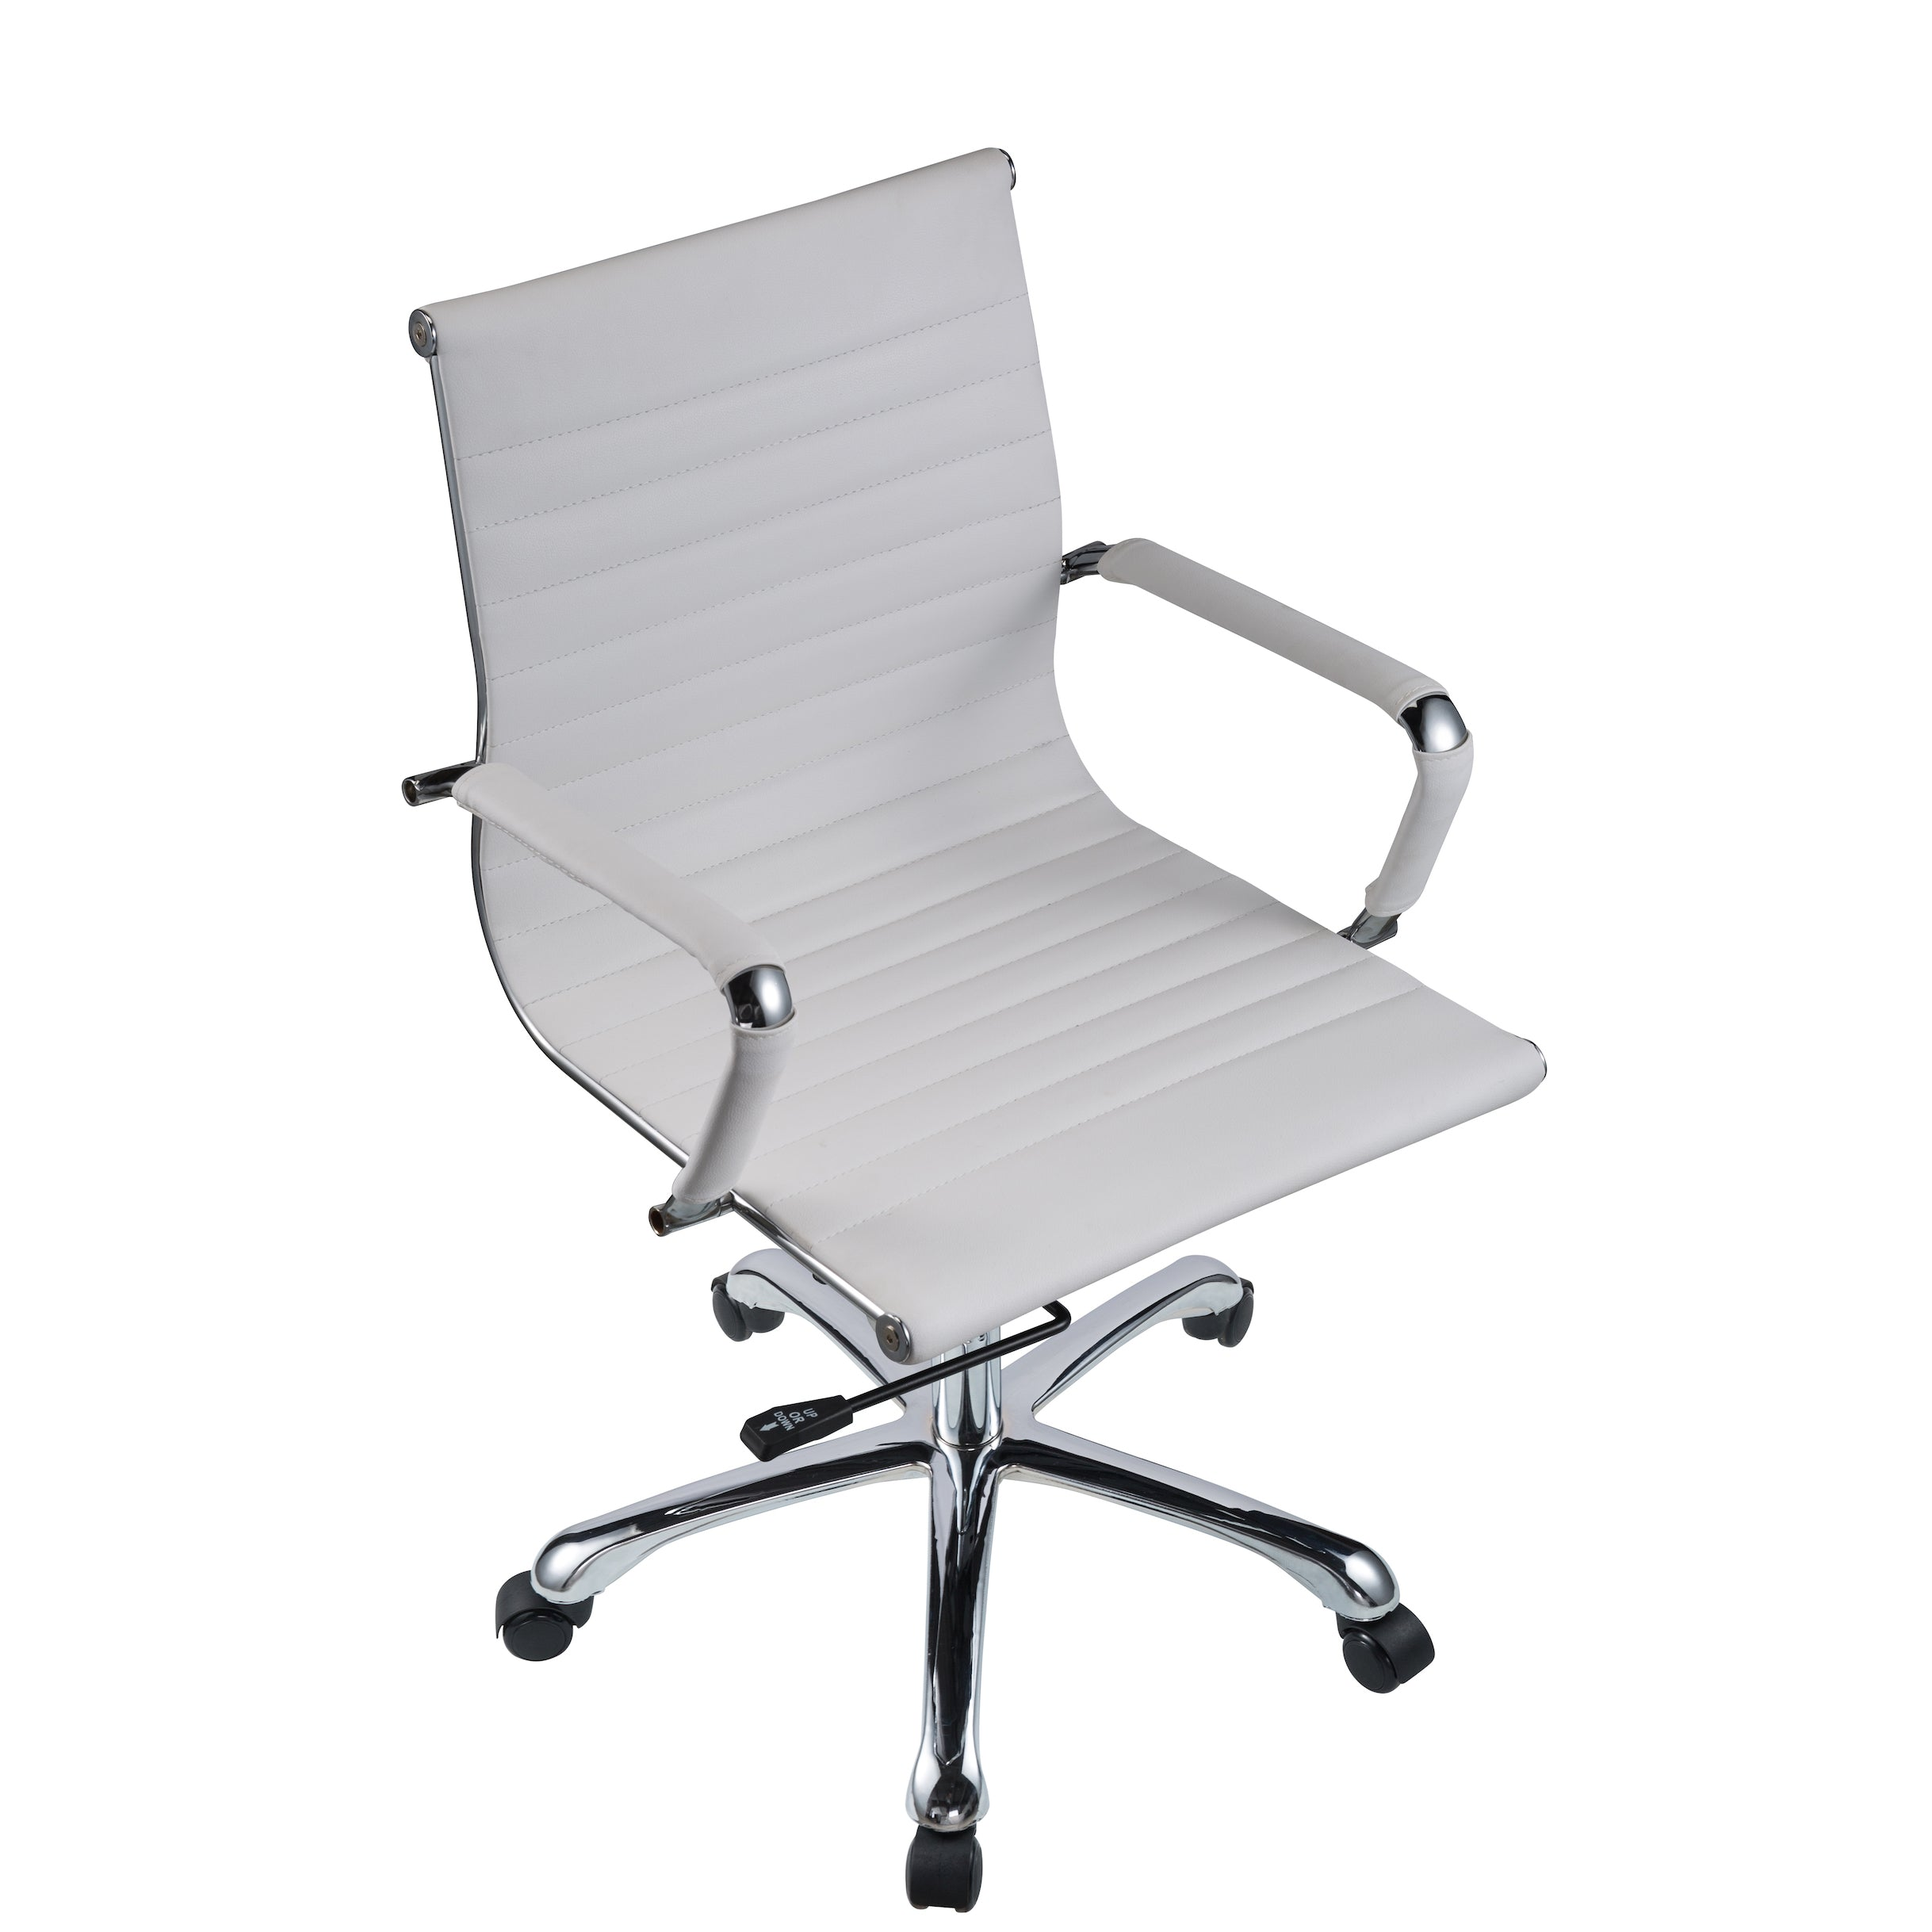 office chair white leather. Bikey Nova Collection, Mid-Back Leather Conference Office Chair (White) White